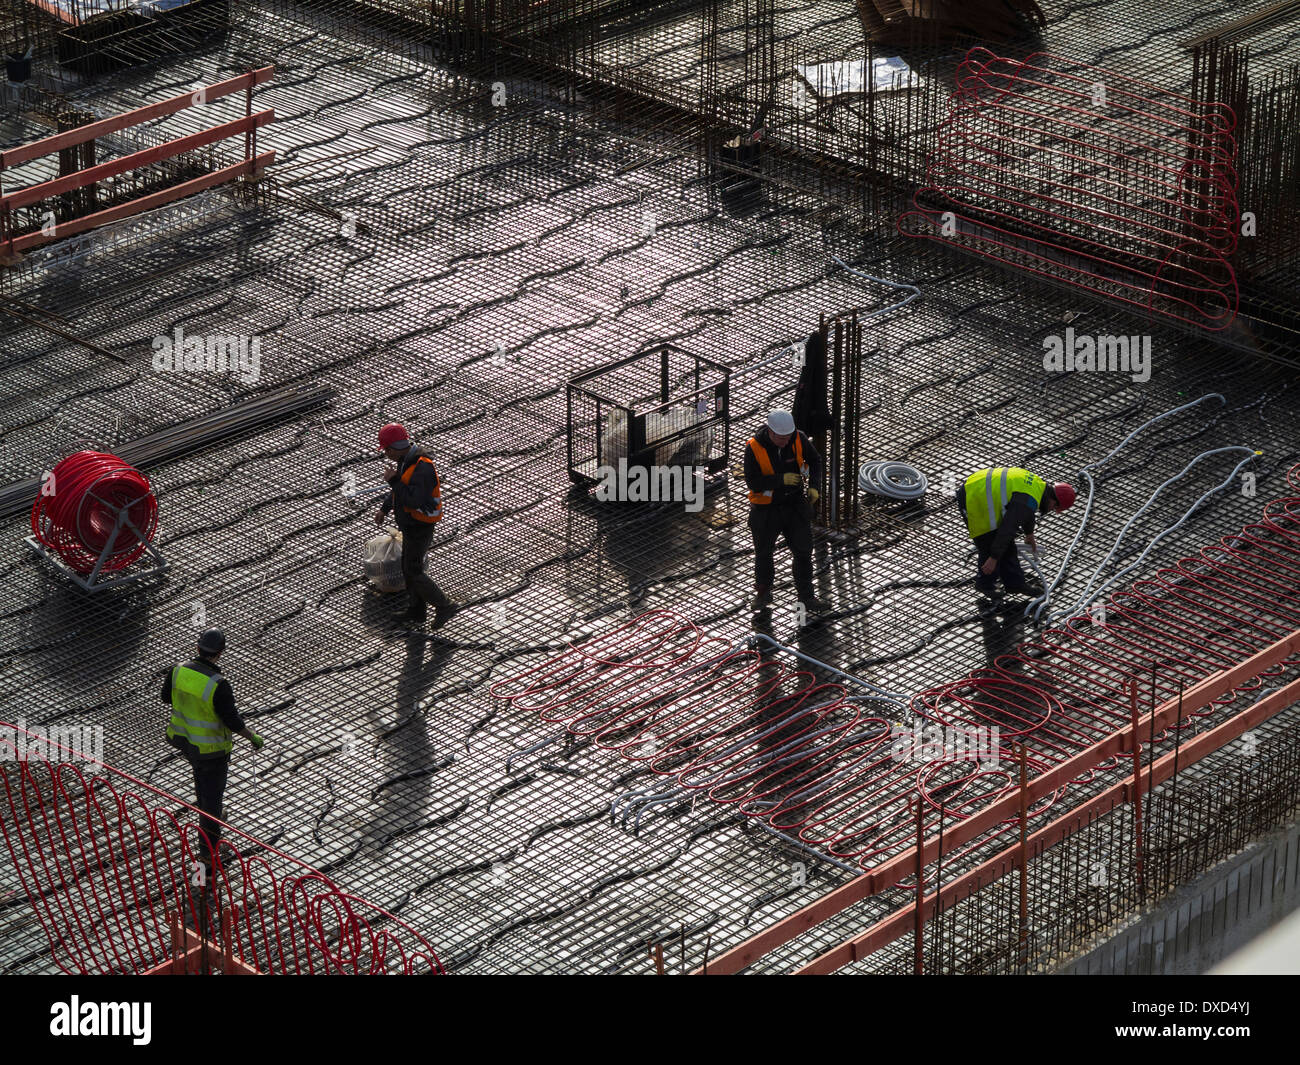 Construction workers on a city centre construction site - Stock Image